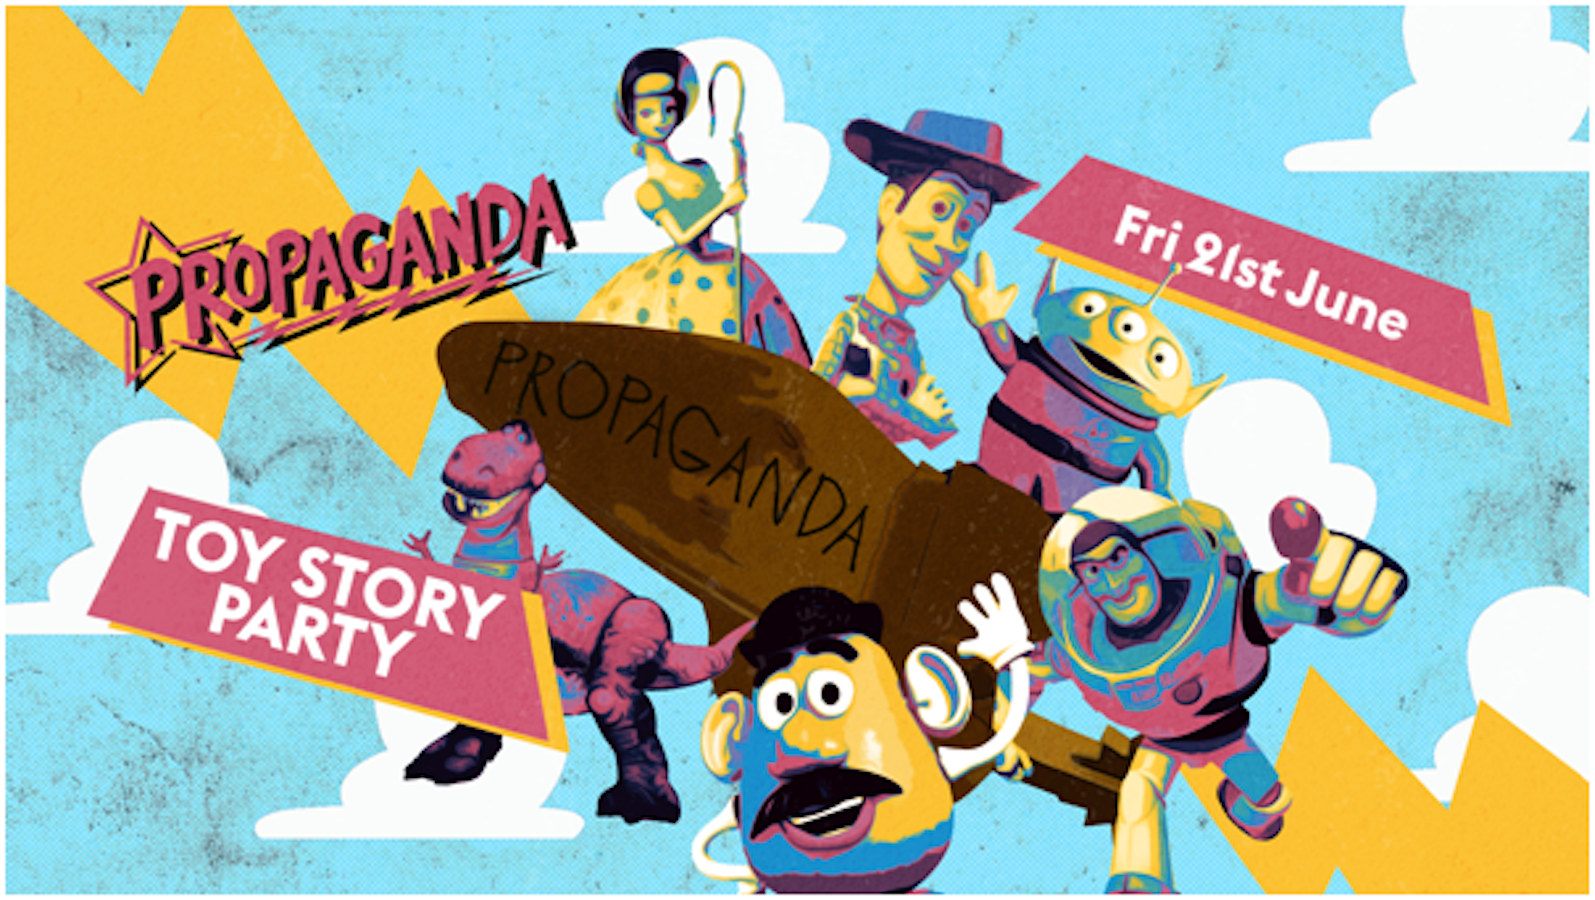 Propaganda Cambridge – Toy Story Party